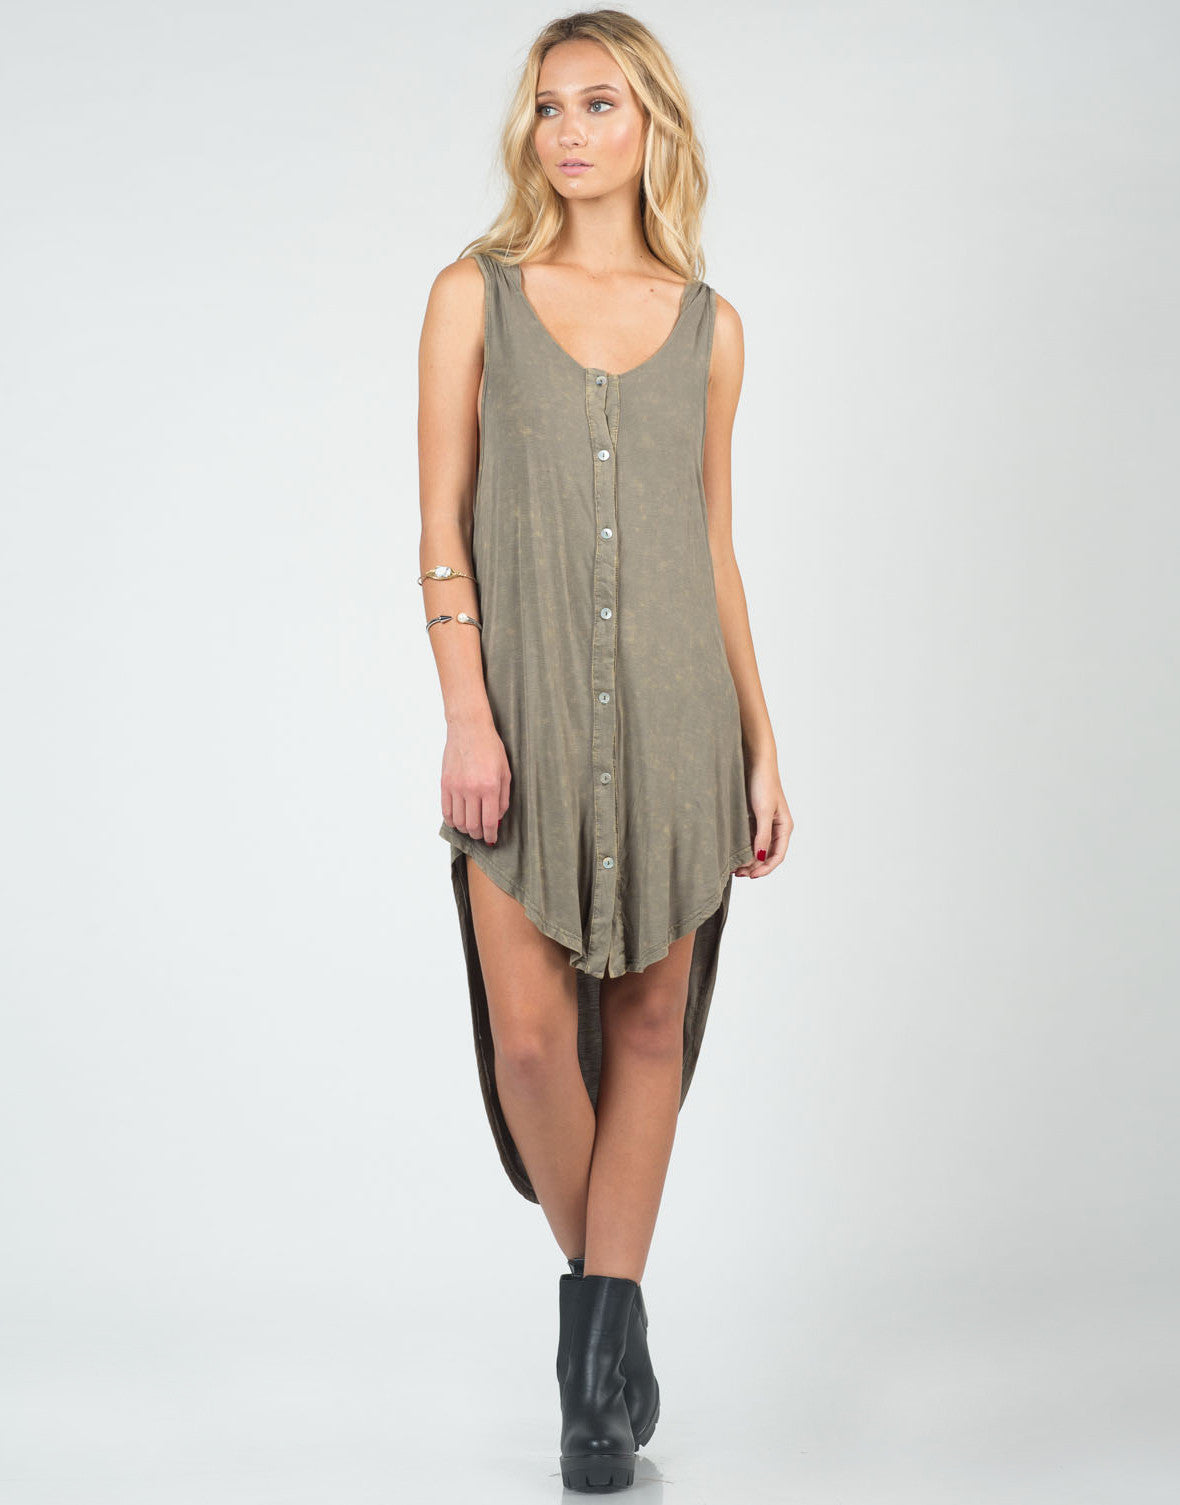 Front View of Hooded Acid Washed Dress